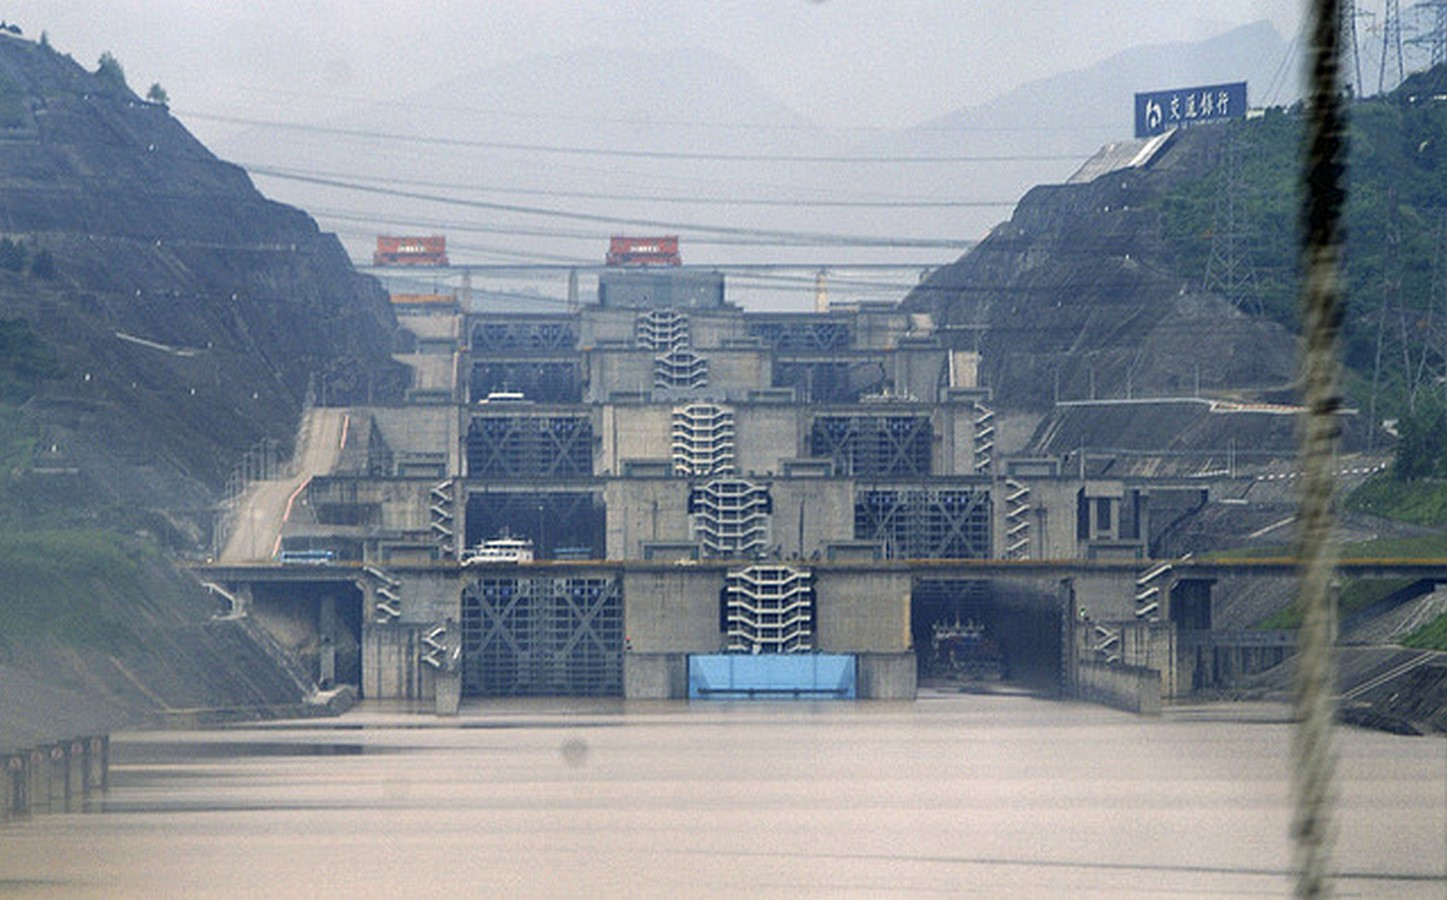 Three Gorges Dam by Pan Jiazheng- The world's Largest hydroelectric dam - Sheet9